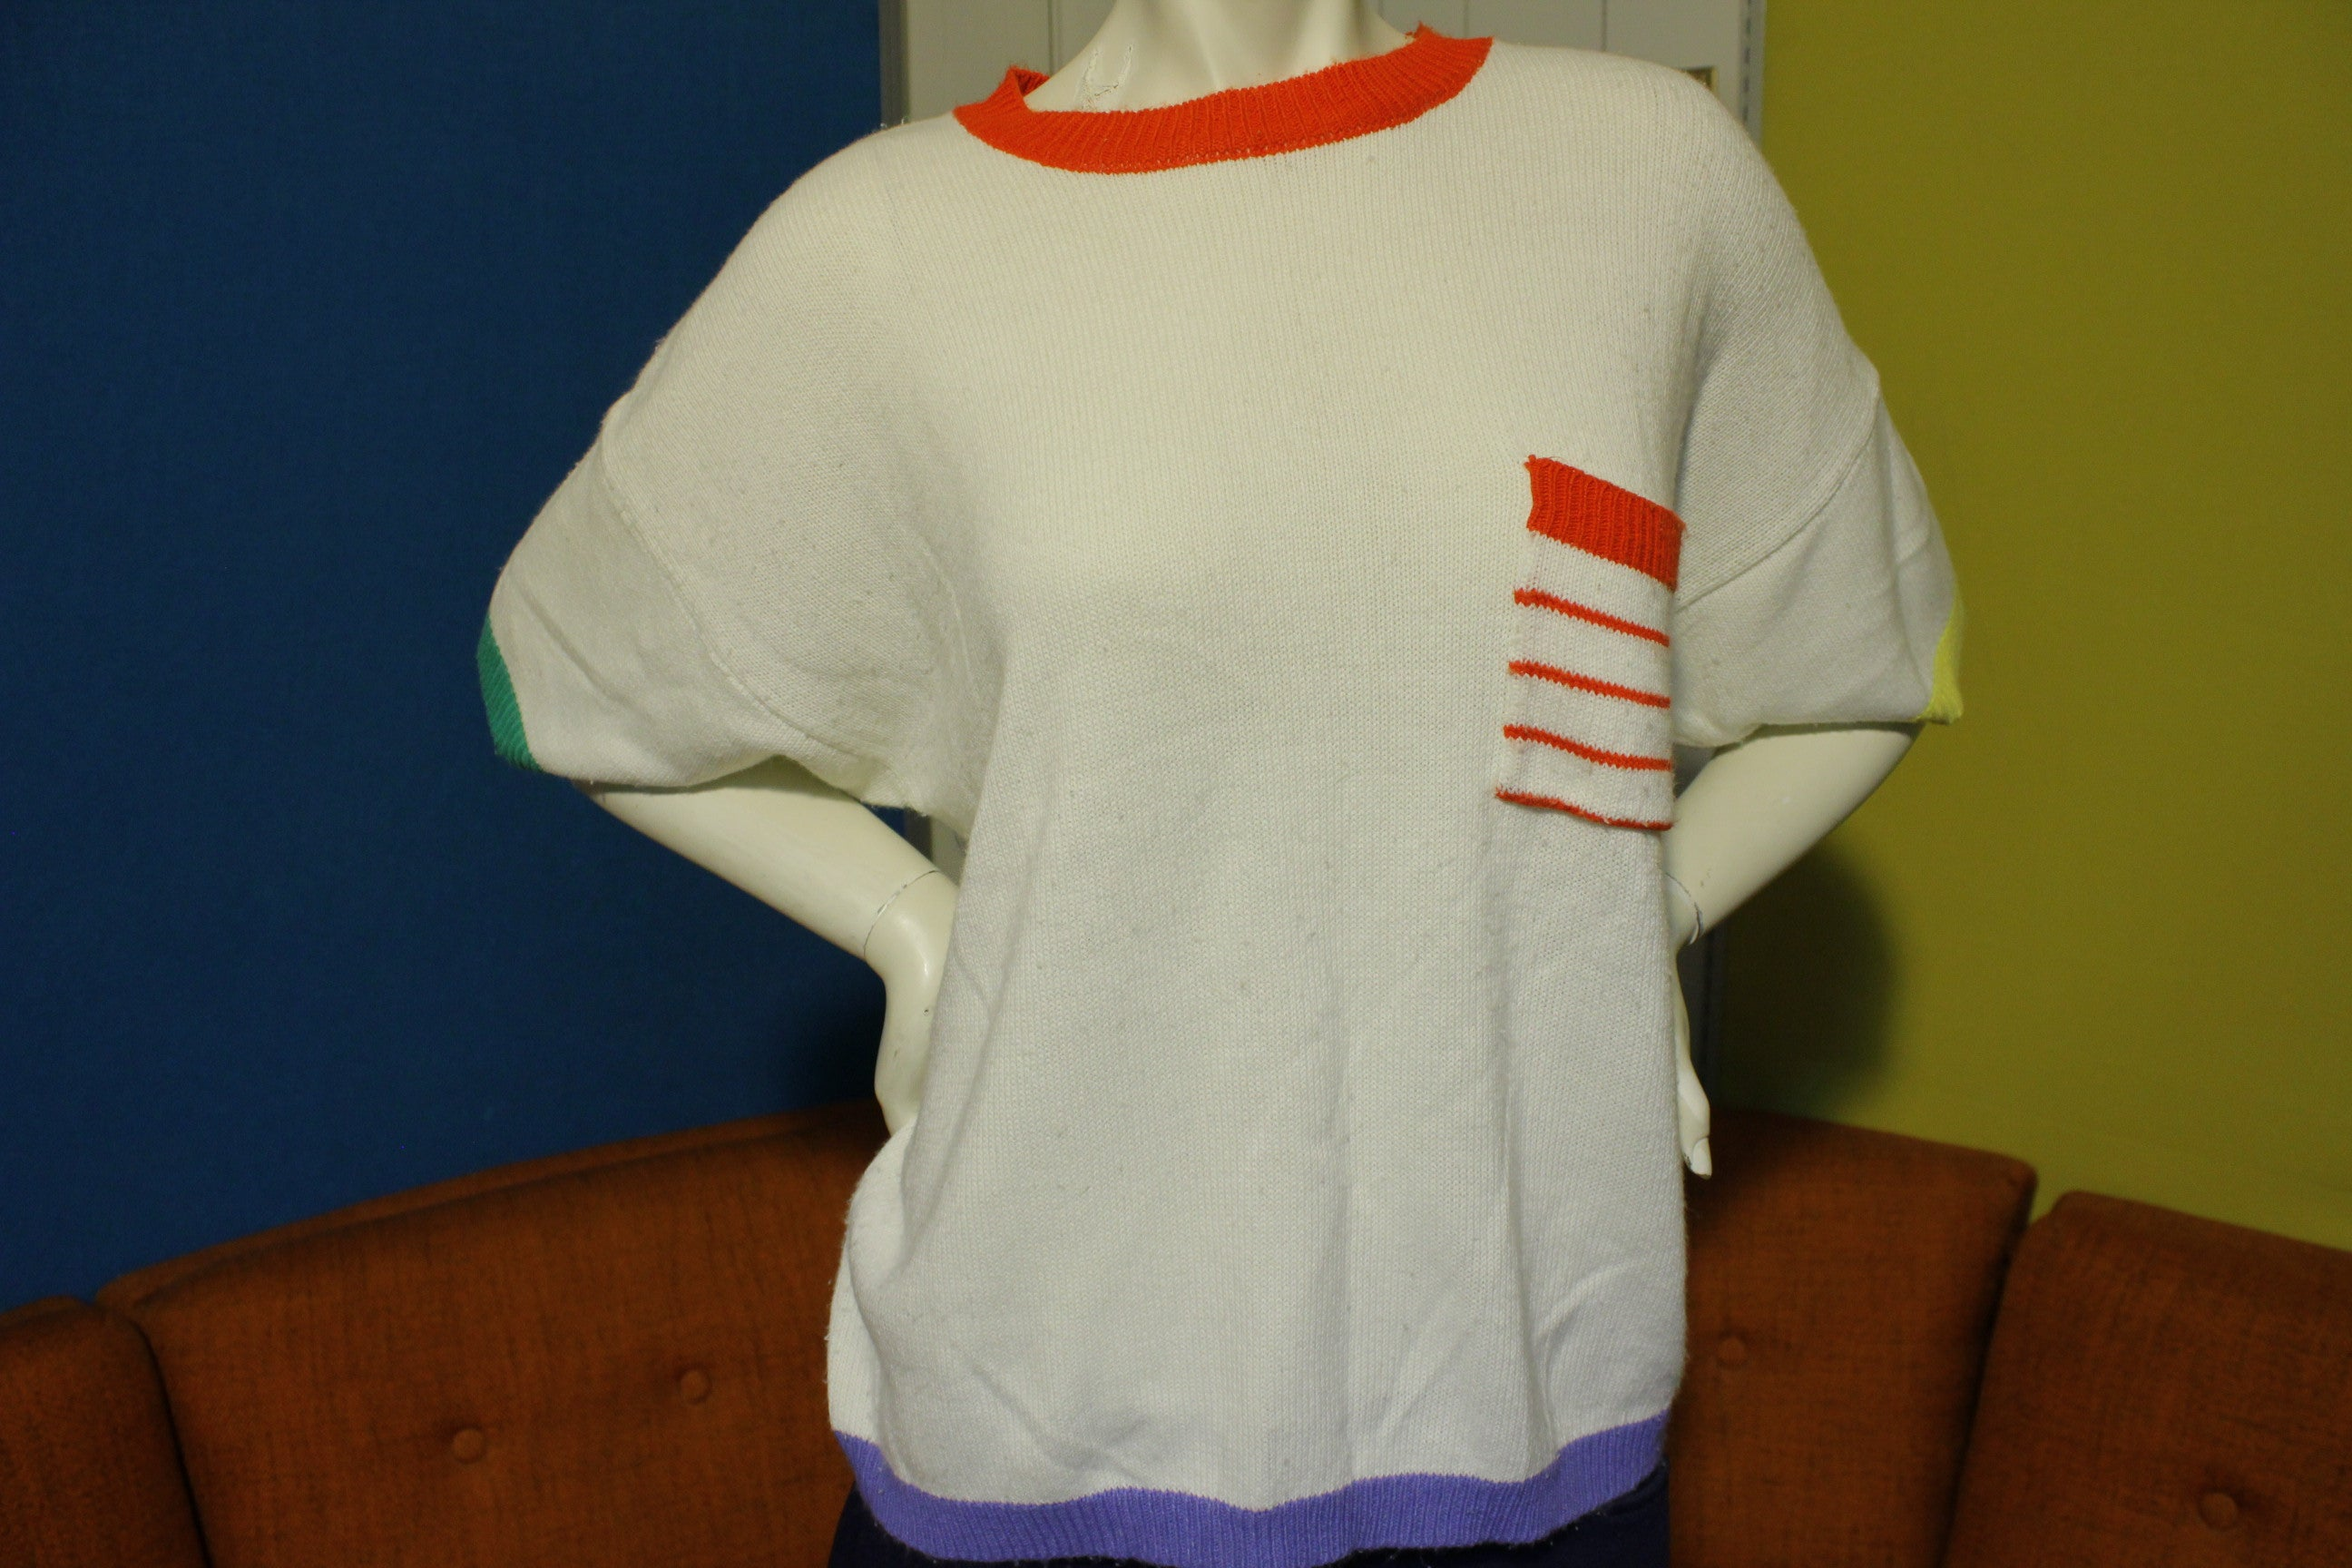 Le Moda II Vintage 80's Knit Short Sleeve Sweater Shirt. Colorful Pocket.